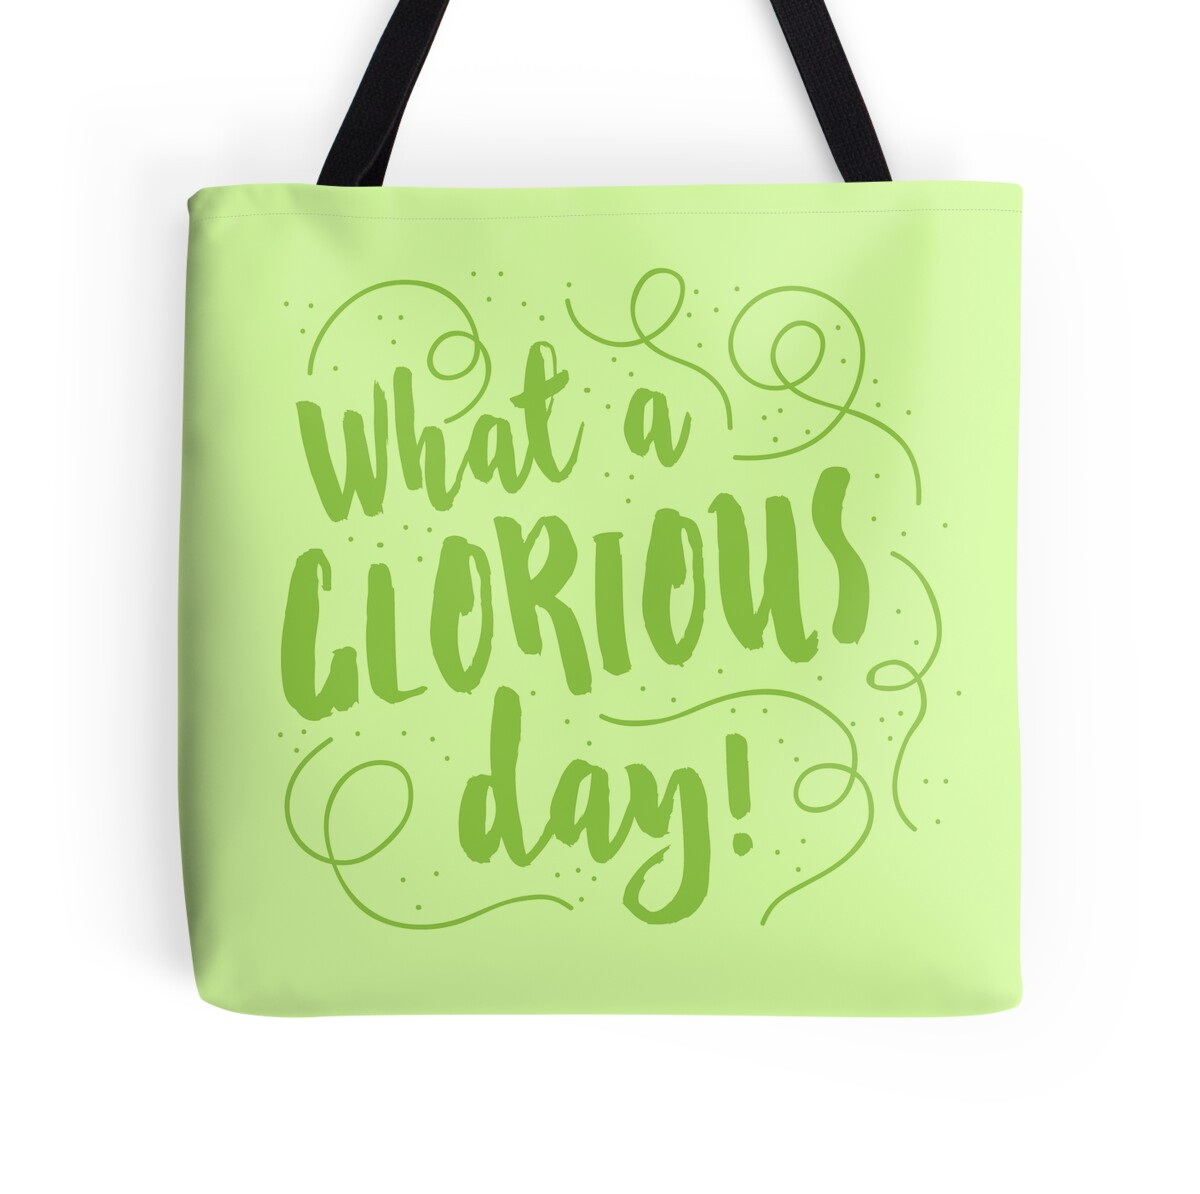 Wall Stickers Perth Quot What A Glorious Day Quot Tote Bags By Jazzydevil Redbubble